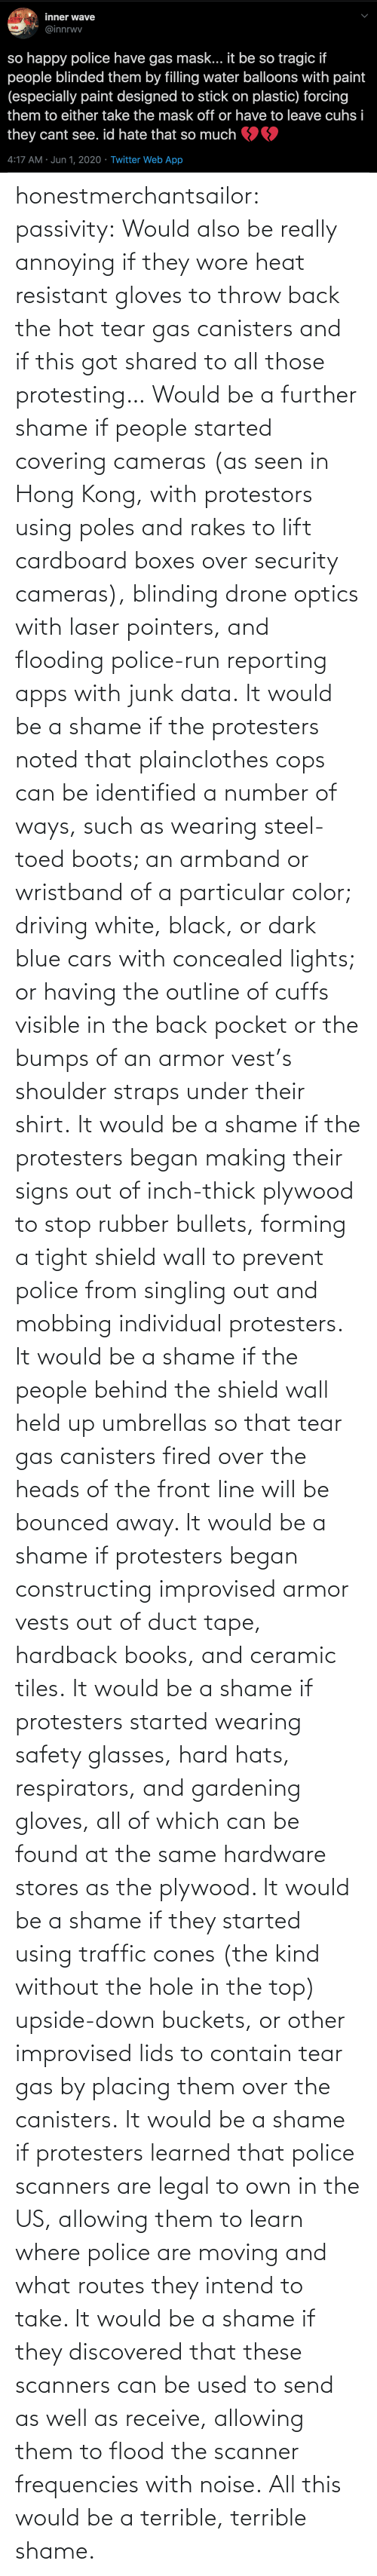 org: honestmerchantsailor:  passivity: Would also be really annoying if they wore heat resistant gloves to throw back the hot tear gas canisters and if this got shared to all those protesting… Would be a further shame if people started covering cameras (as seen in Hong Kong, with protestors using poles and rakes to lift cardboard boxes over security cameras), blinding drone optics with laser pointers, and flooding police-run reporting apps with junk data. It would be a shame if the protesters noted that plainclothes cops can be identified a number of ways, such as wearing steel-toed boots; an armband or wristband of a particular color; driving white, black, or dark blue cars with concealed lights; or having the outline of cuffs visible in the back pocket or the bumps of an armor vest's shoulder straps under their shirt. It would be a shame if the protesters began making their signs out of inch-thick plywood to stop rubber bullets, forming a tight shield wall to prevent police from singling out and mobbing individual protesters. It would be a shame if the people behind the shield wall held up umbrellas so that tear gas canisters fired over the heads of the front line will be bounced away. It would be a shame if protesters began constructing improvised armor vests out of duct tape, hardback books, and ceramic tiles. It would be a shame if protesters started wearing safety glasses, hard hats, respirators, and gardening gloves, all of which can be found at the same hardware stores as the plywood. It would be a shame if they started using traffic cones (the kind without the hole in the top) upside-down buckets, or other improvised lids to contain tear gas by placing them over the canisters. It would be a shame if protesters learned that police scanners are legal to own in the US, allowing them to learn where police are moving and what routes they intend to take. It would be a shame if they discovered that these scanners can be used to send as well as receive, allowing them to flood the scanner frequencies with noise. All this would be a terrible, terrible shame.